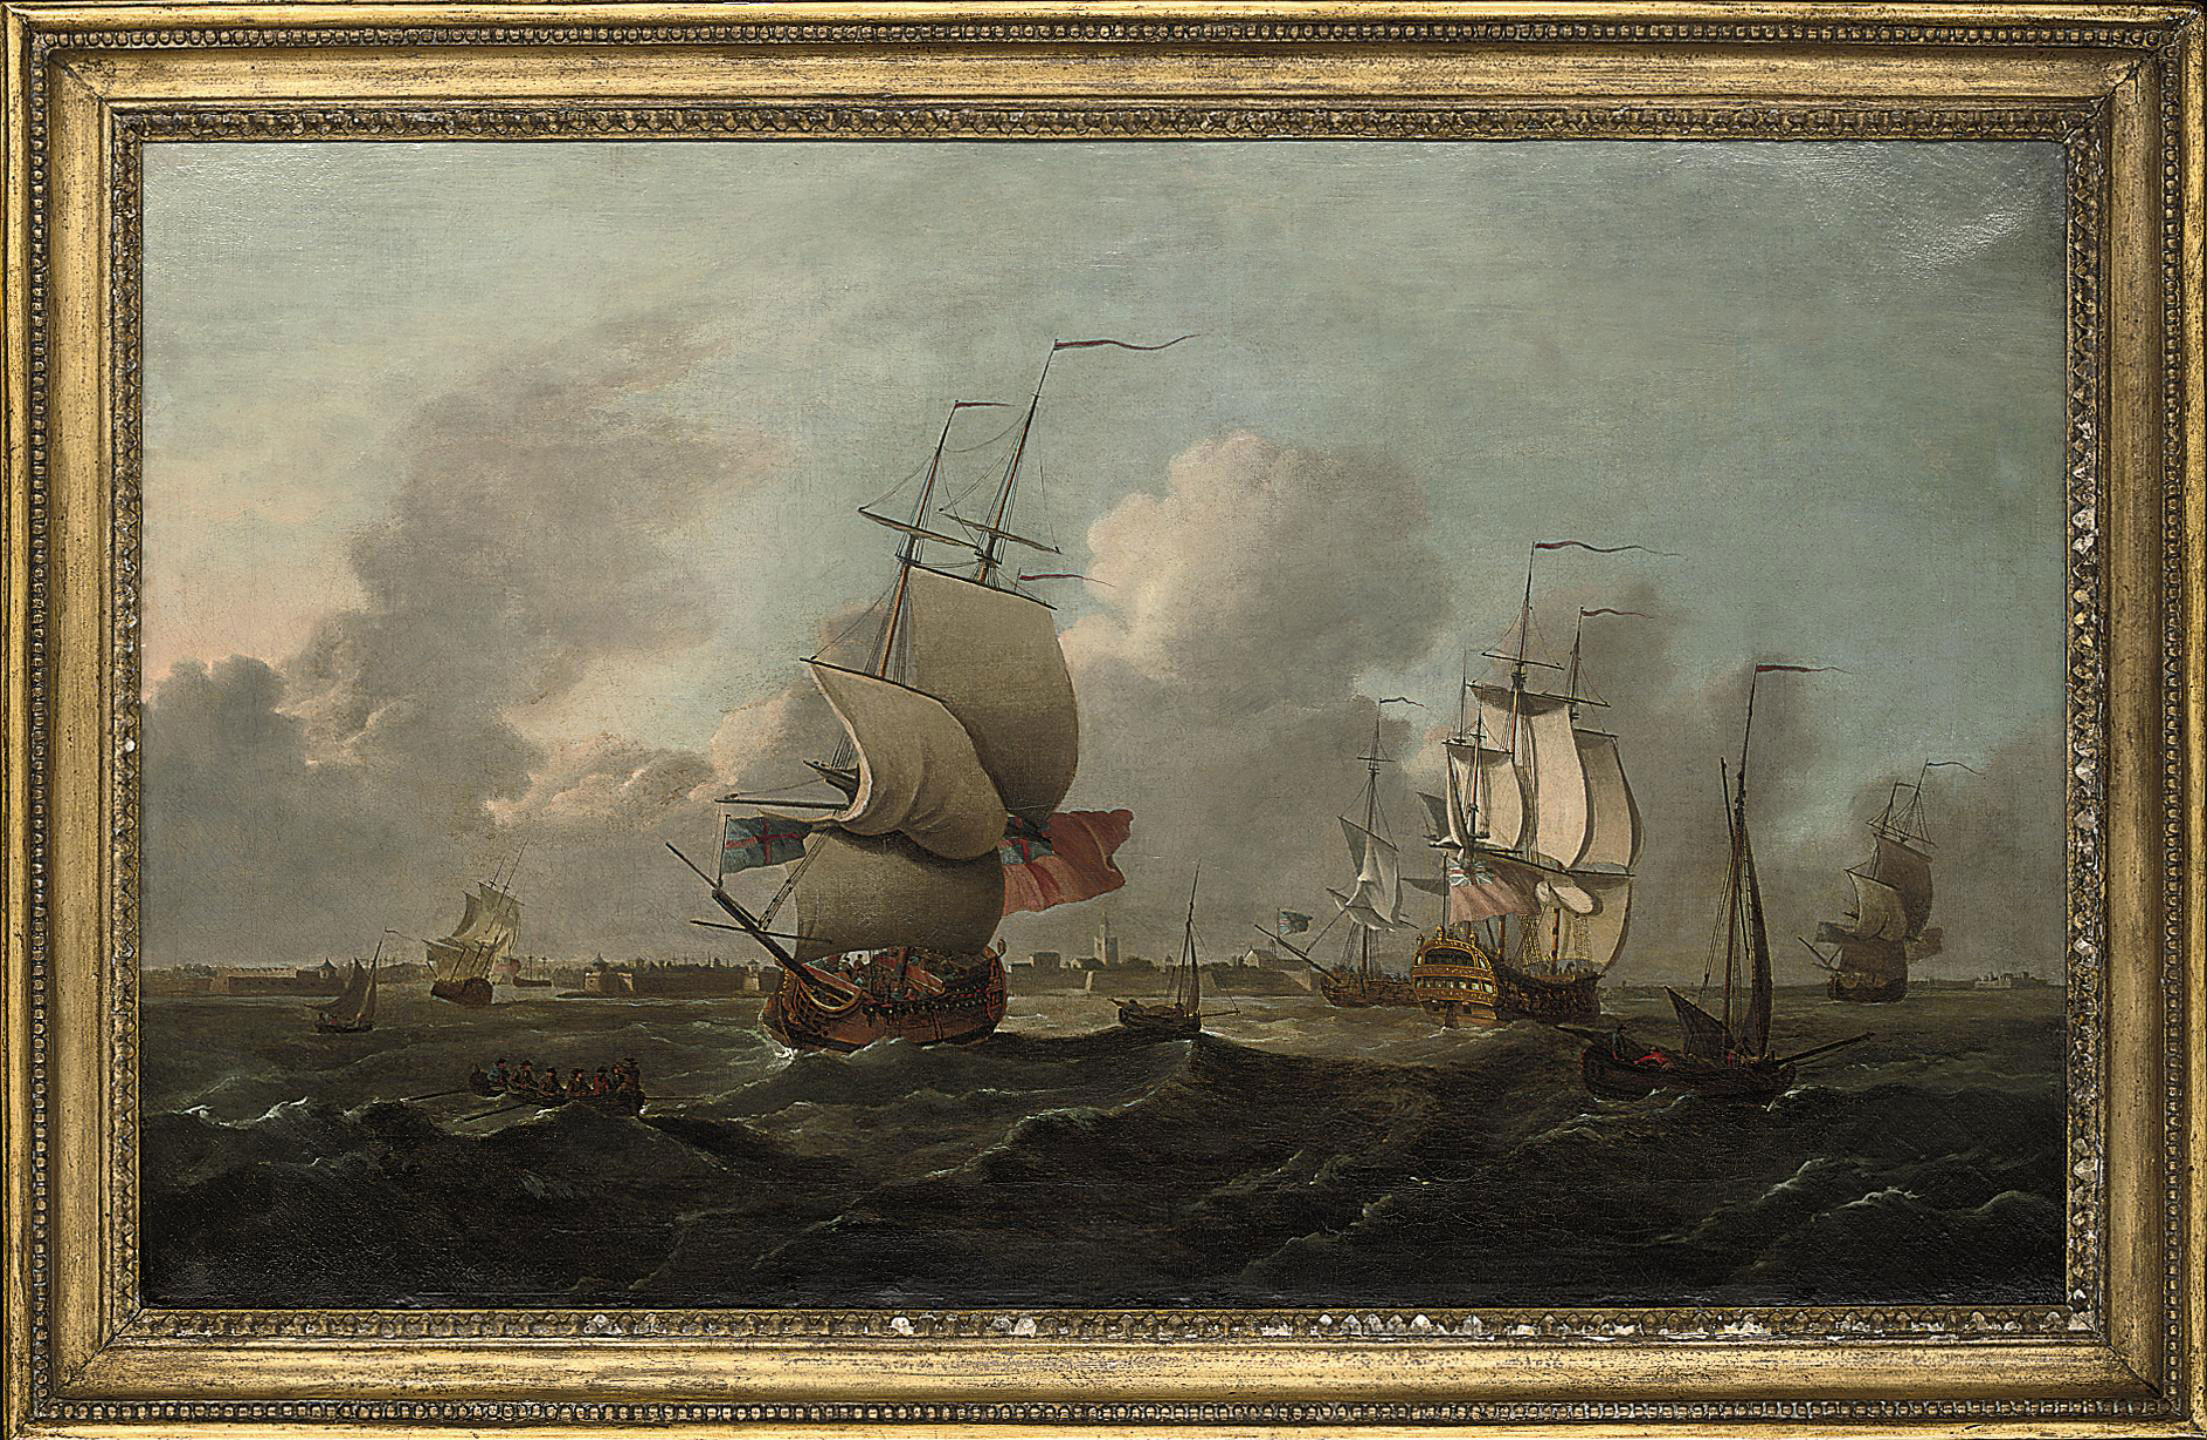 Ships of the Fleet off the naval dockyard at Sheerness